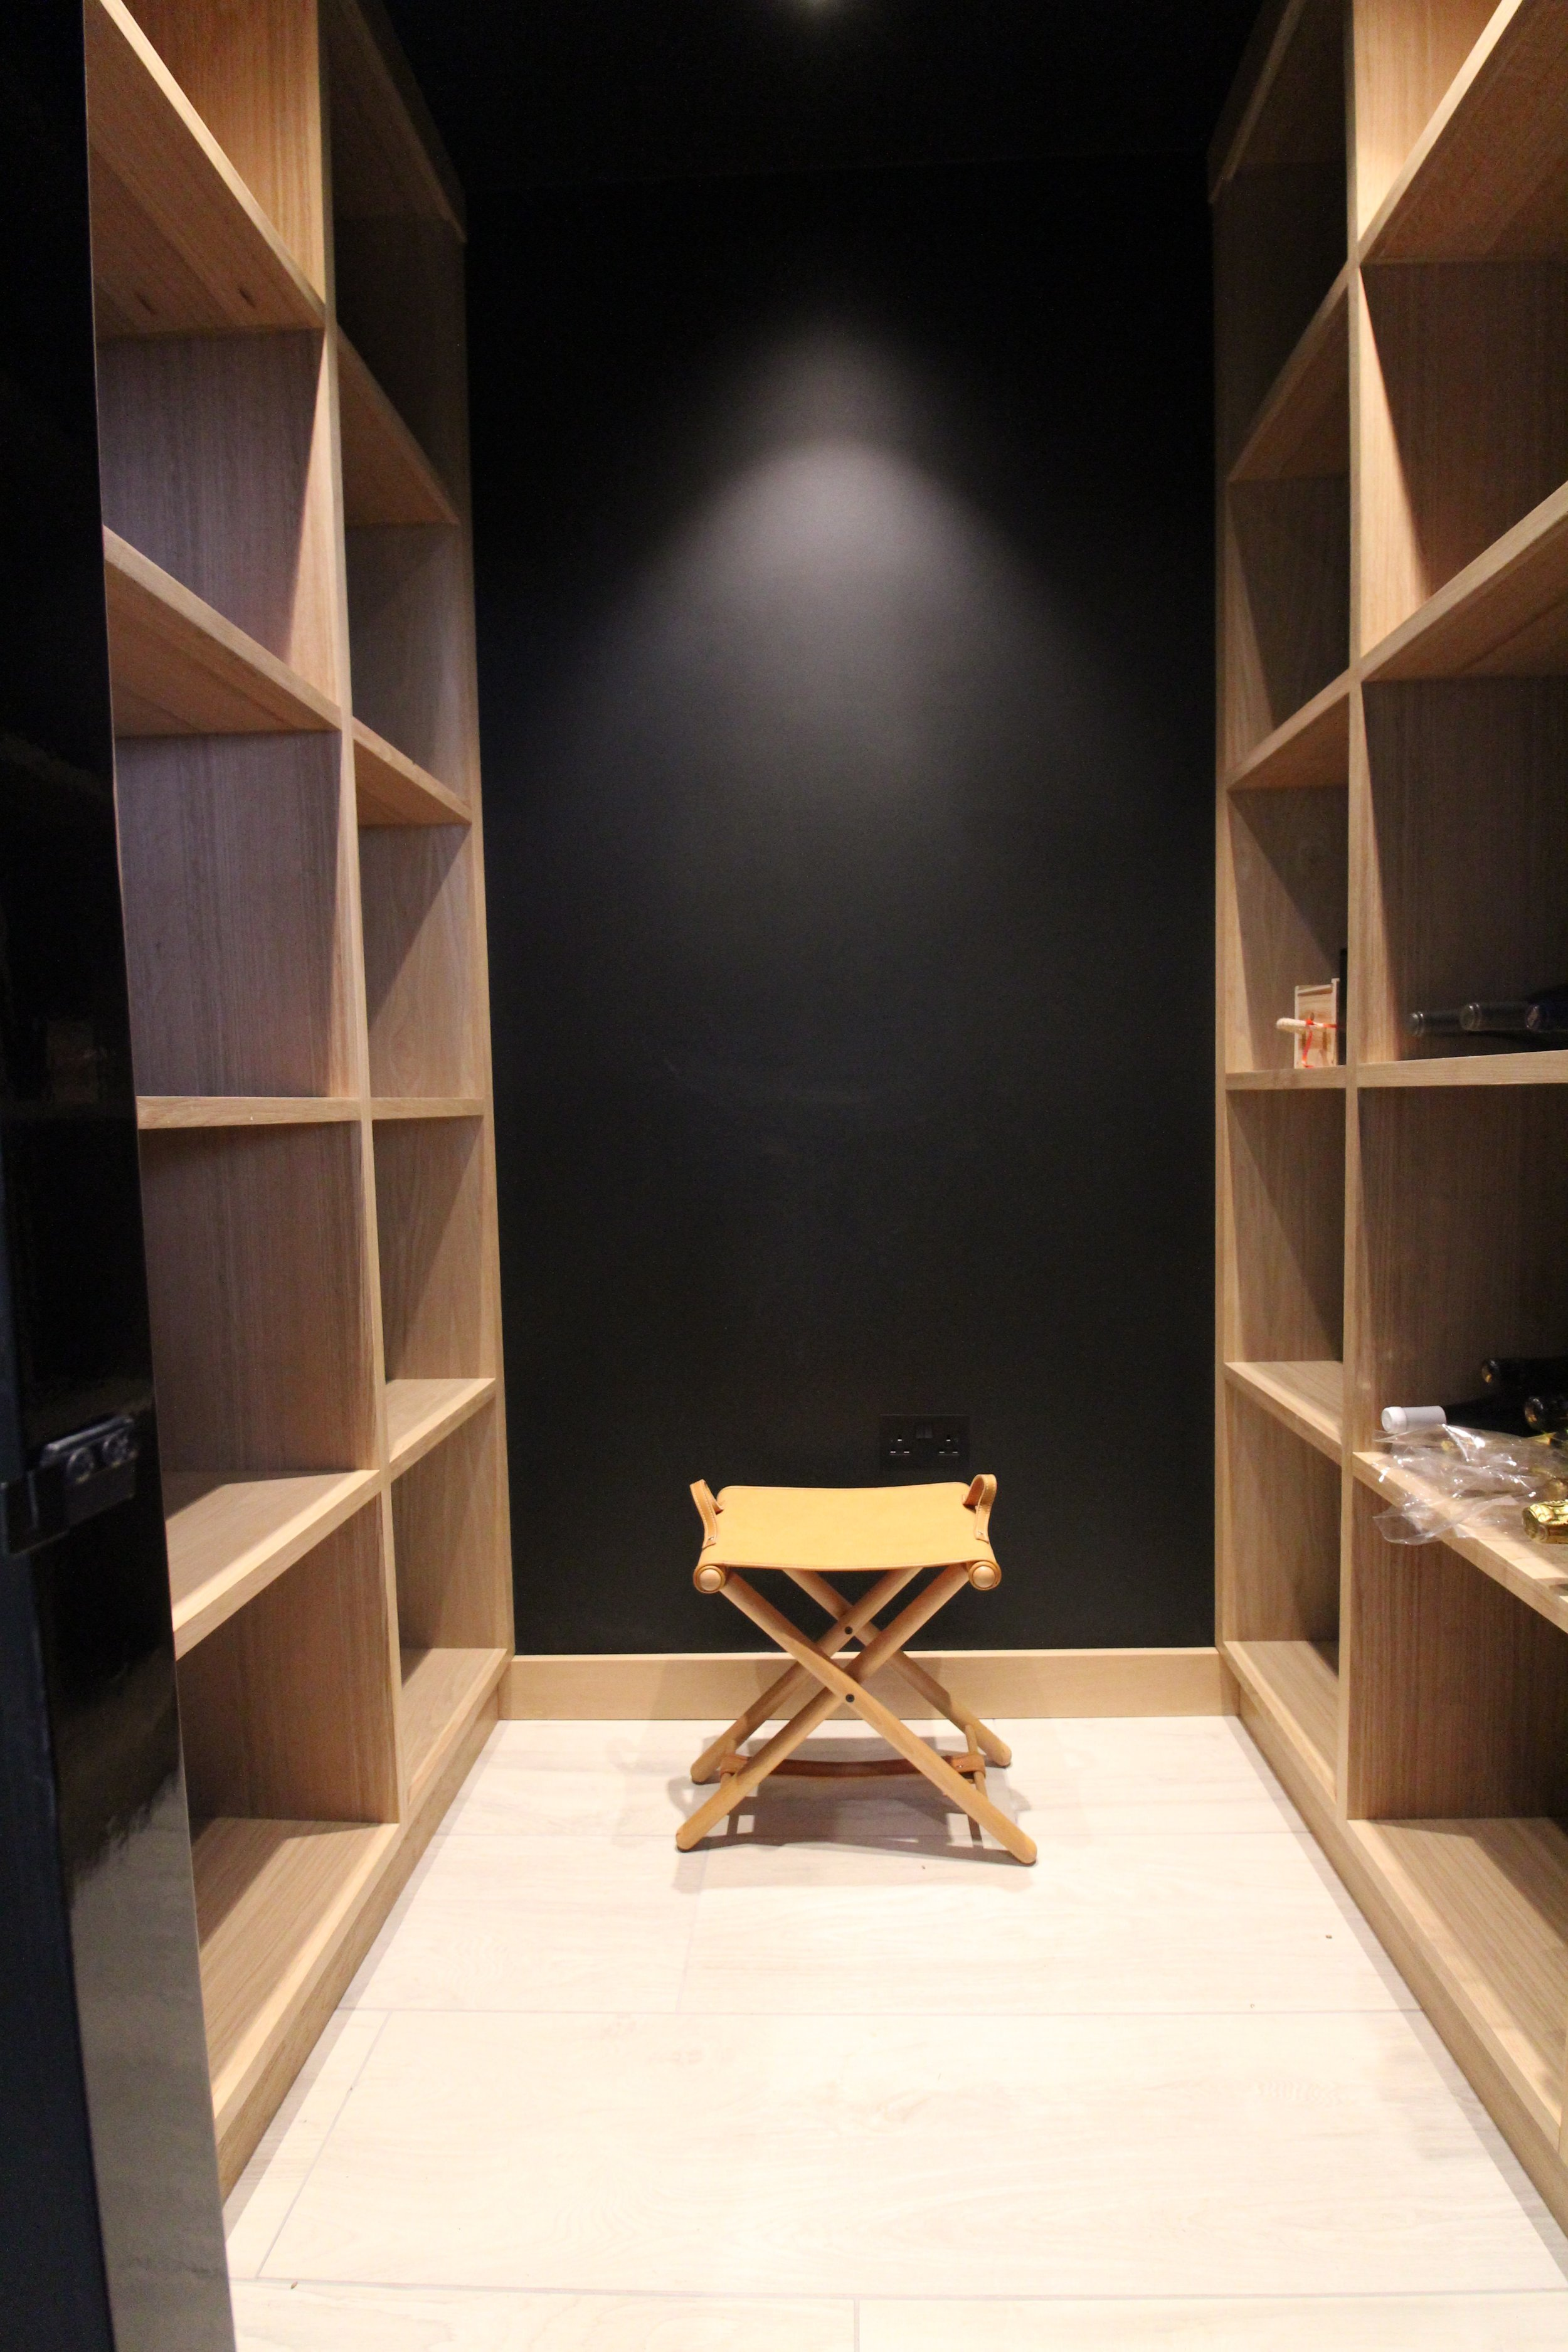 Joiner-made oak shelving can hold up to 400 bottles of wine or champagne.